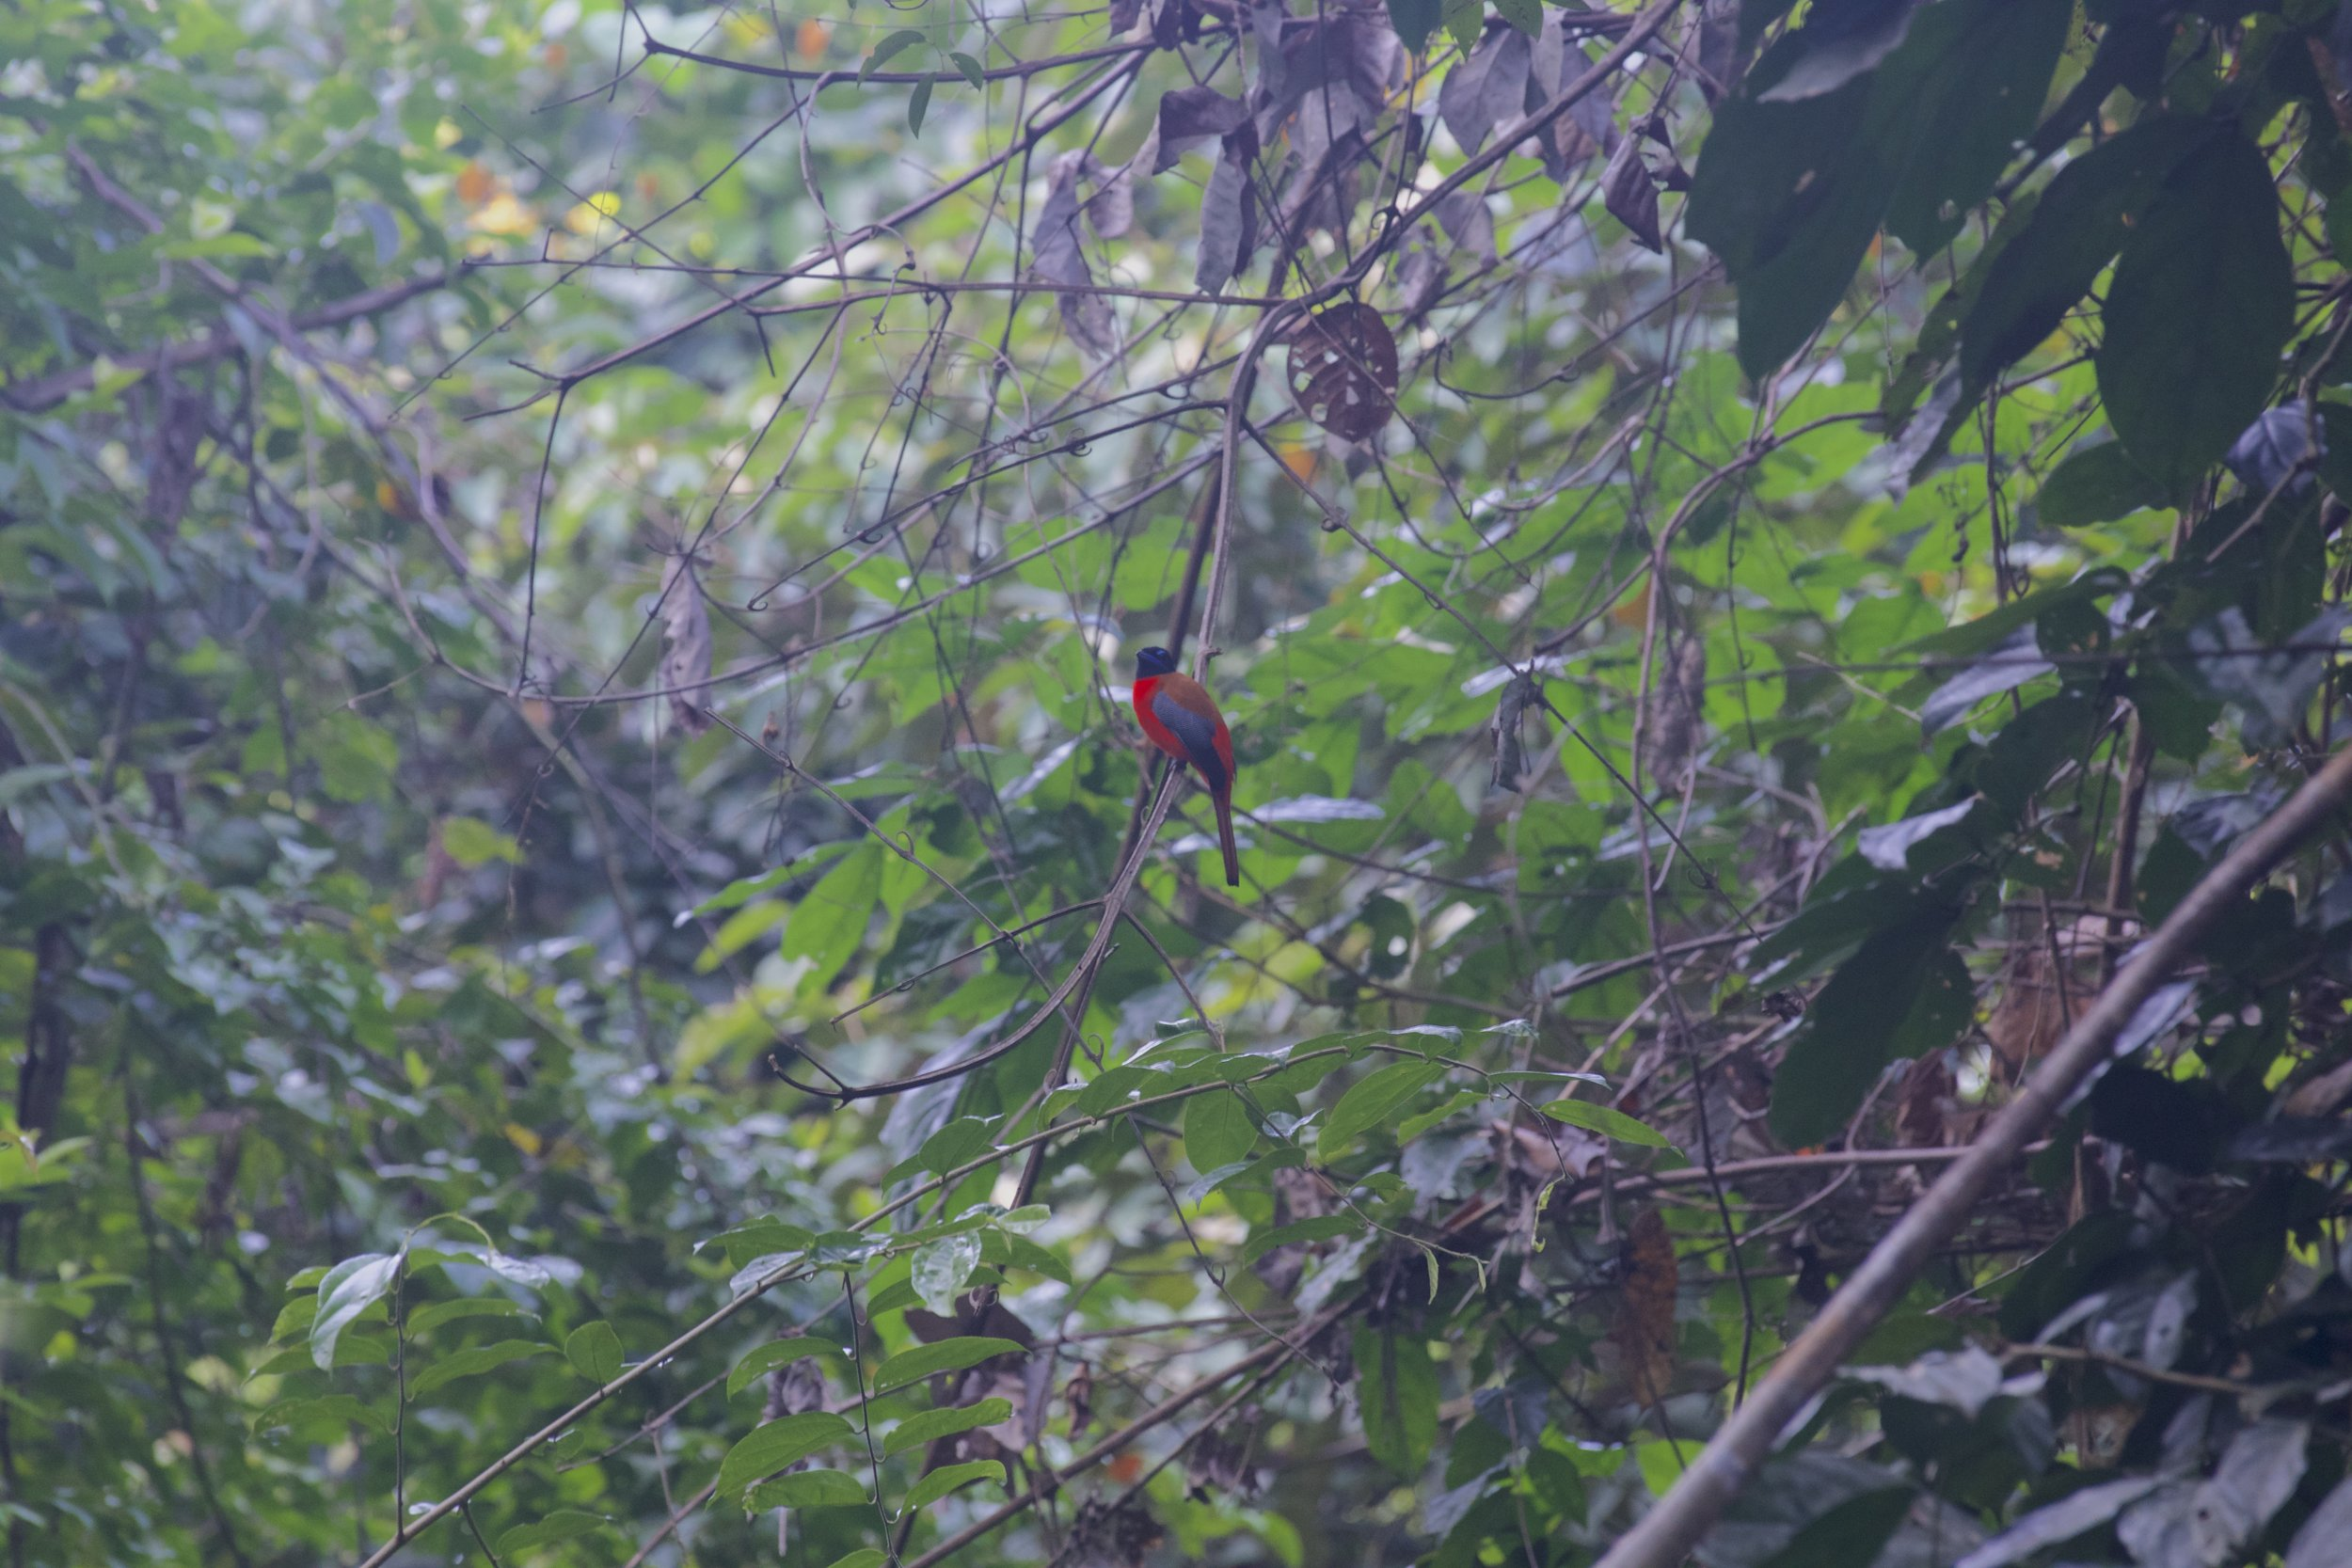 One of the many bird species found in Kenyir, the Scarlet Rumped Trogon